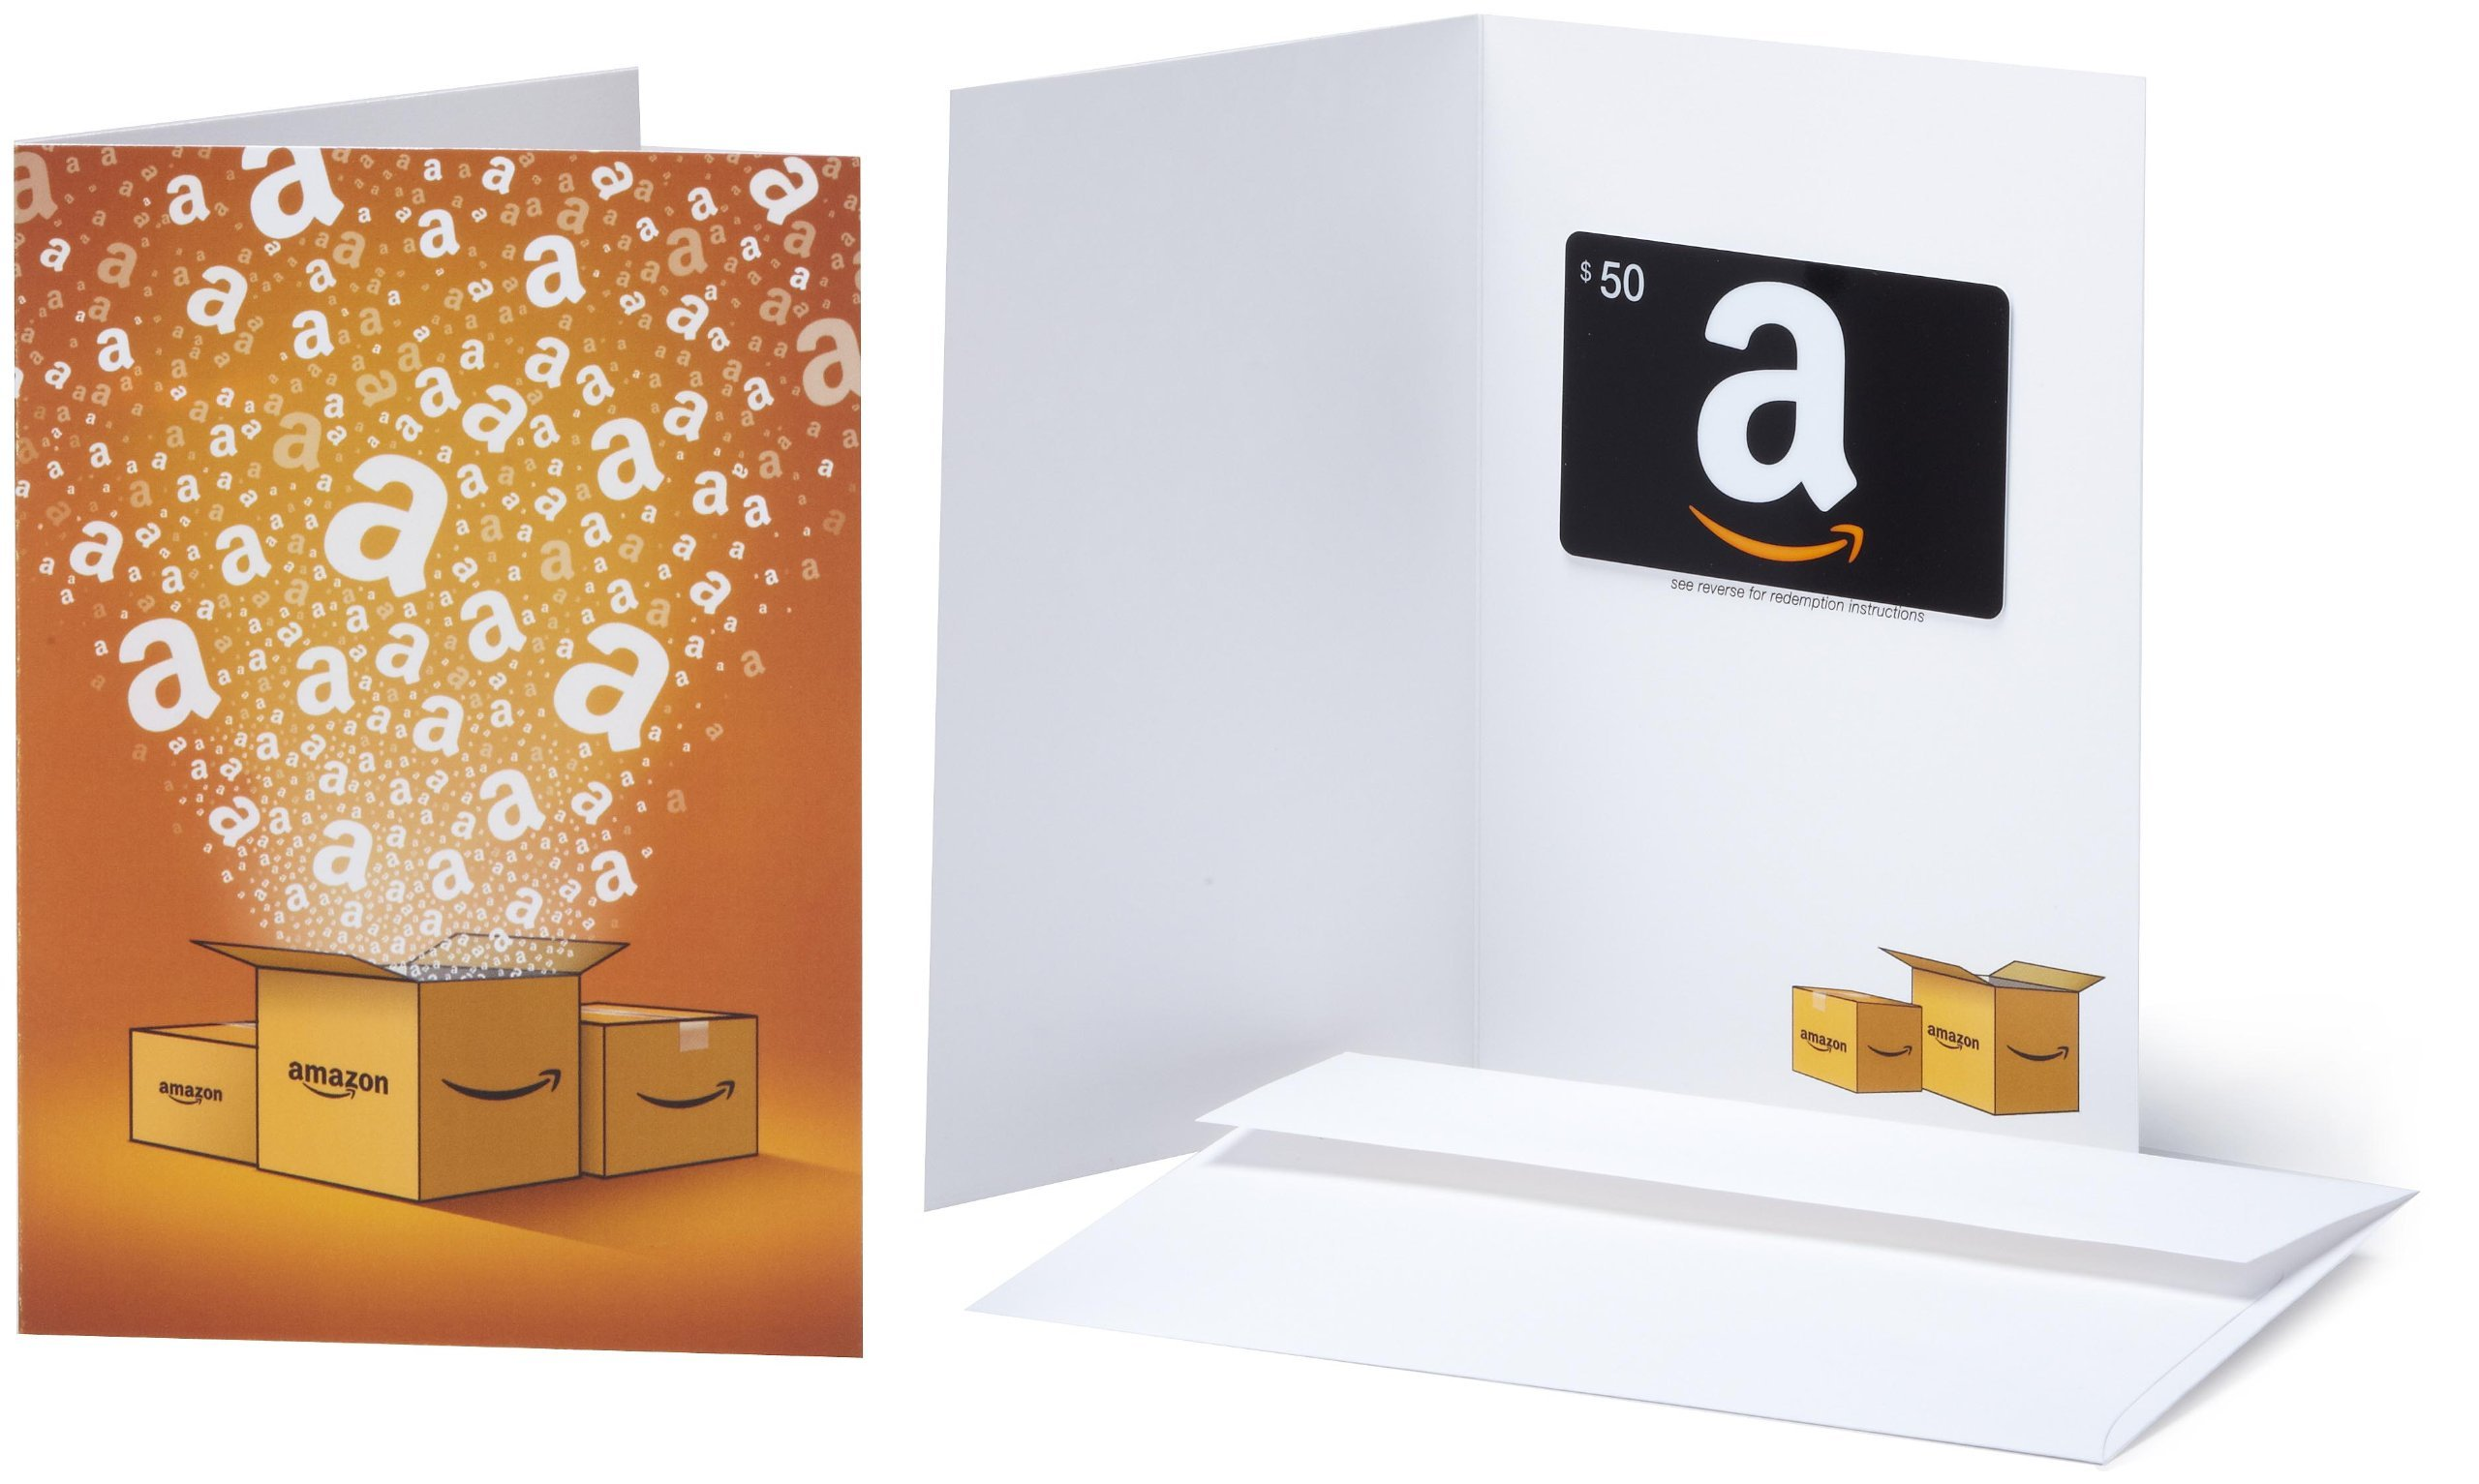 Amazon.com 50 Gift Card in a Greeting Card (Amazon Surprise Box Design)